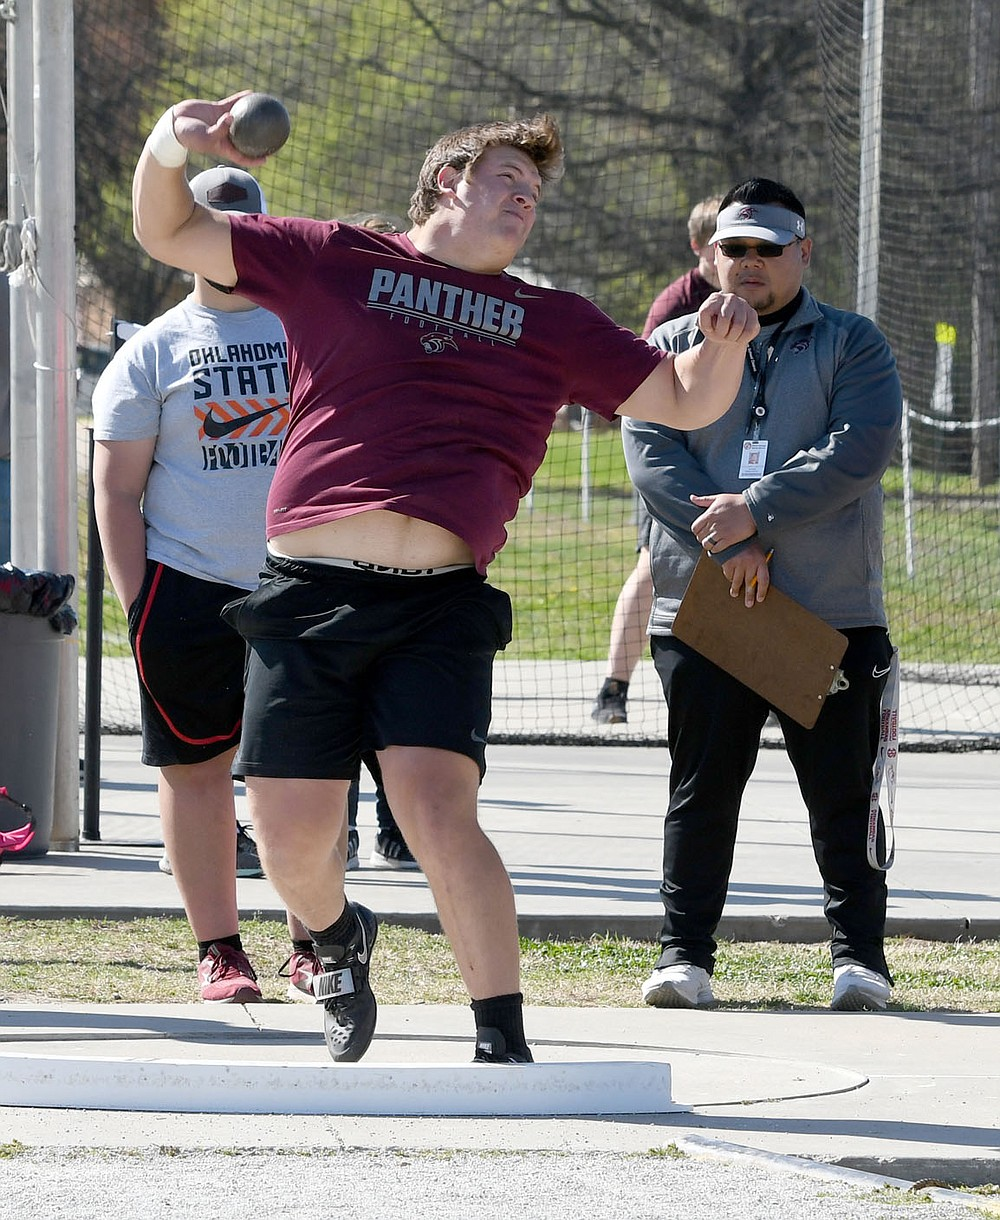 Bud Sullins/Special to the Herald-Leader Siloam Springs junior Jace Sutulovich throws the shot during the Panther Relays on April 1 at Glenn W. Black Stadium.